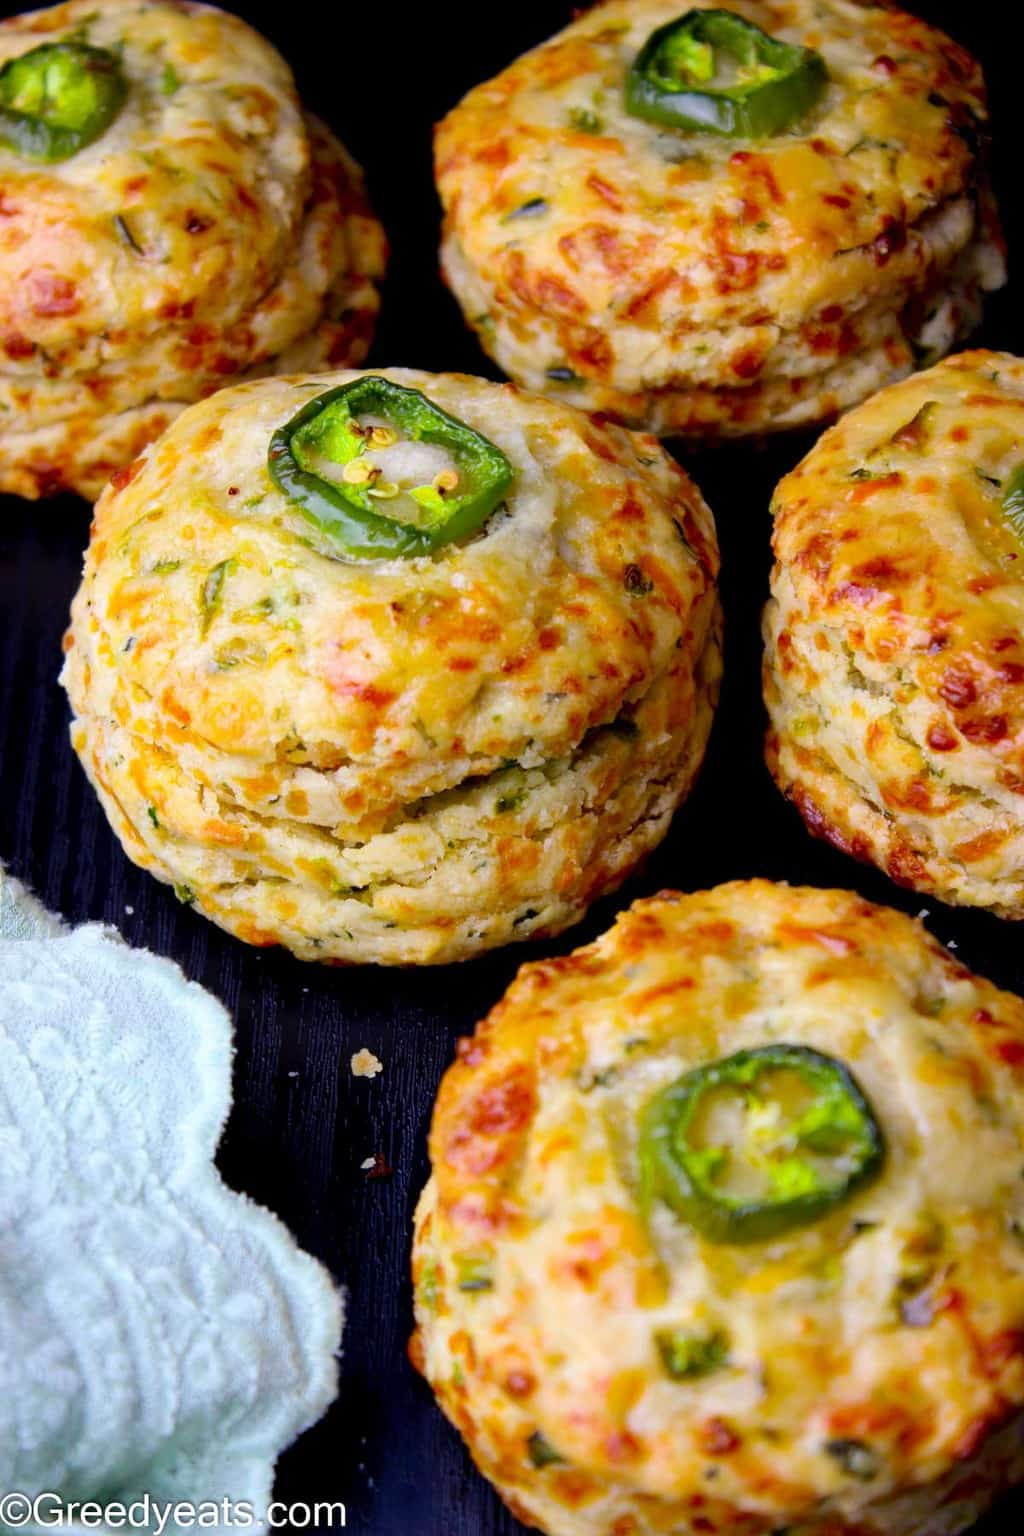 Looking for Thanksgiving sides recipe? Your search has ended with these buttery and flaky homemade Jalapeno Cheddar Biscuits recipe